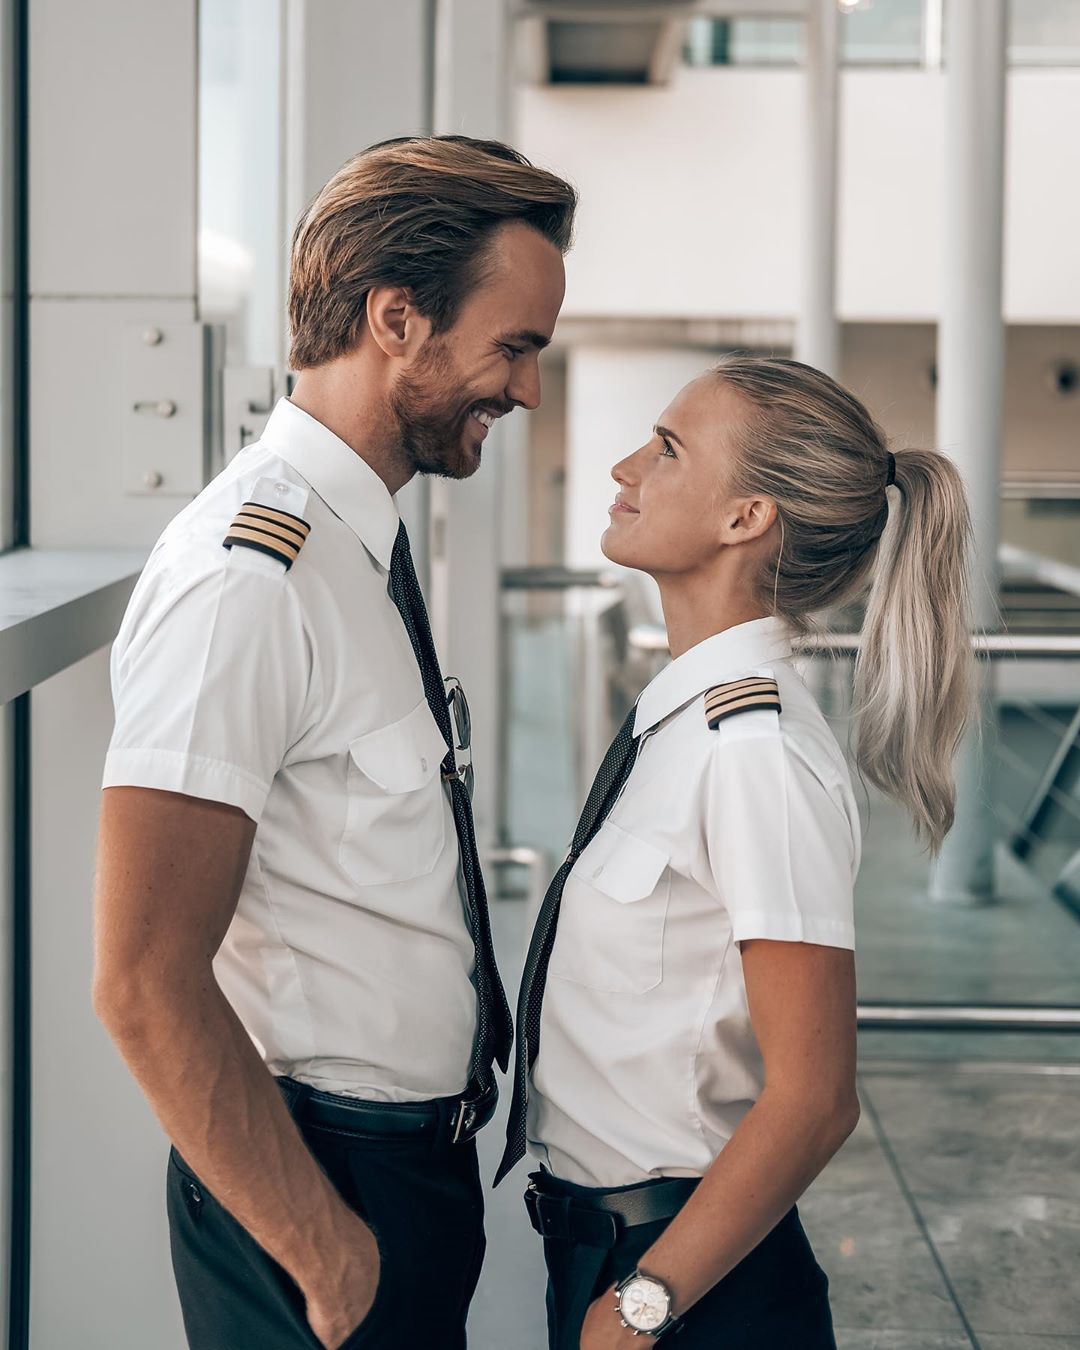 Instagram's most famous pilot couple